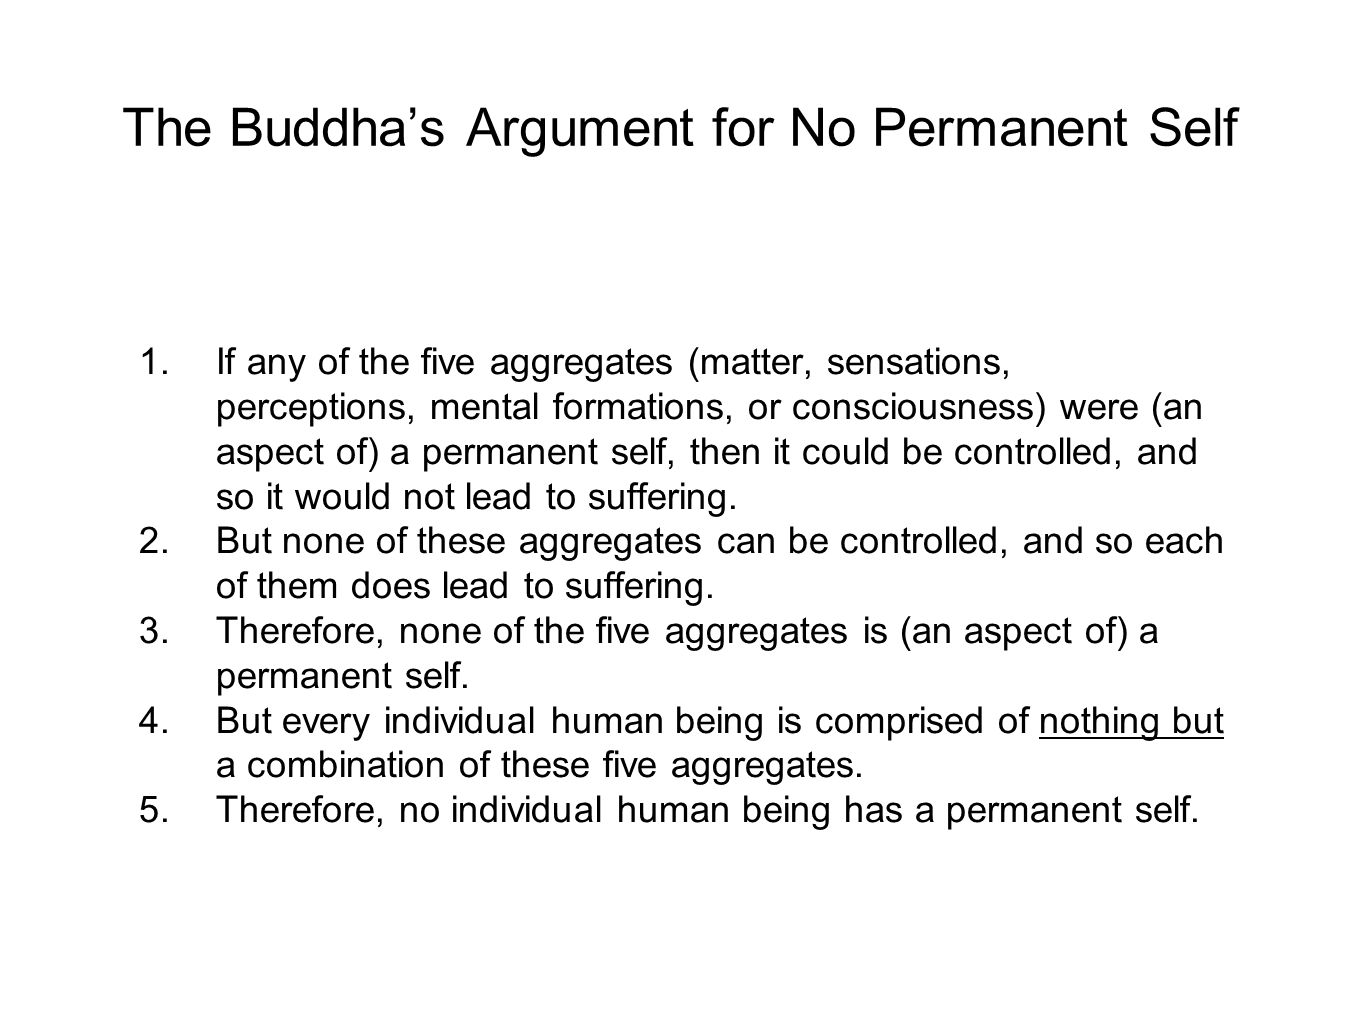 The Buddha's Social Thought Those who think that Buddhism is interested only in lofty ideals, high moral and philosophical thought, and that it ignores the social and economic welfare of people, are wrong.